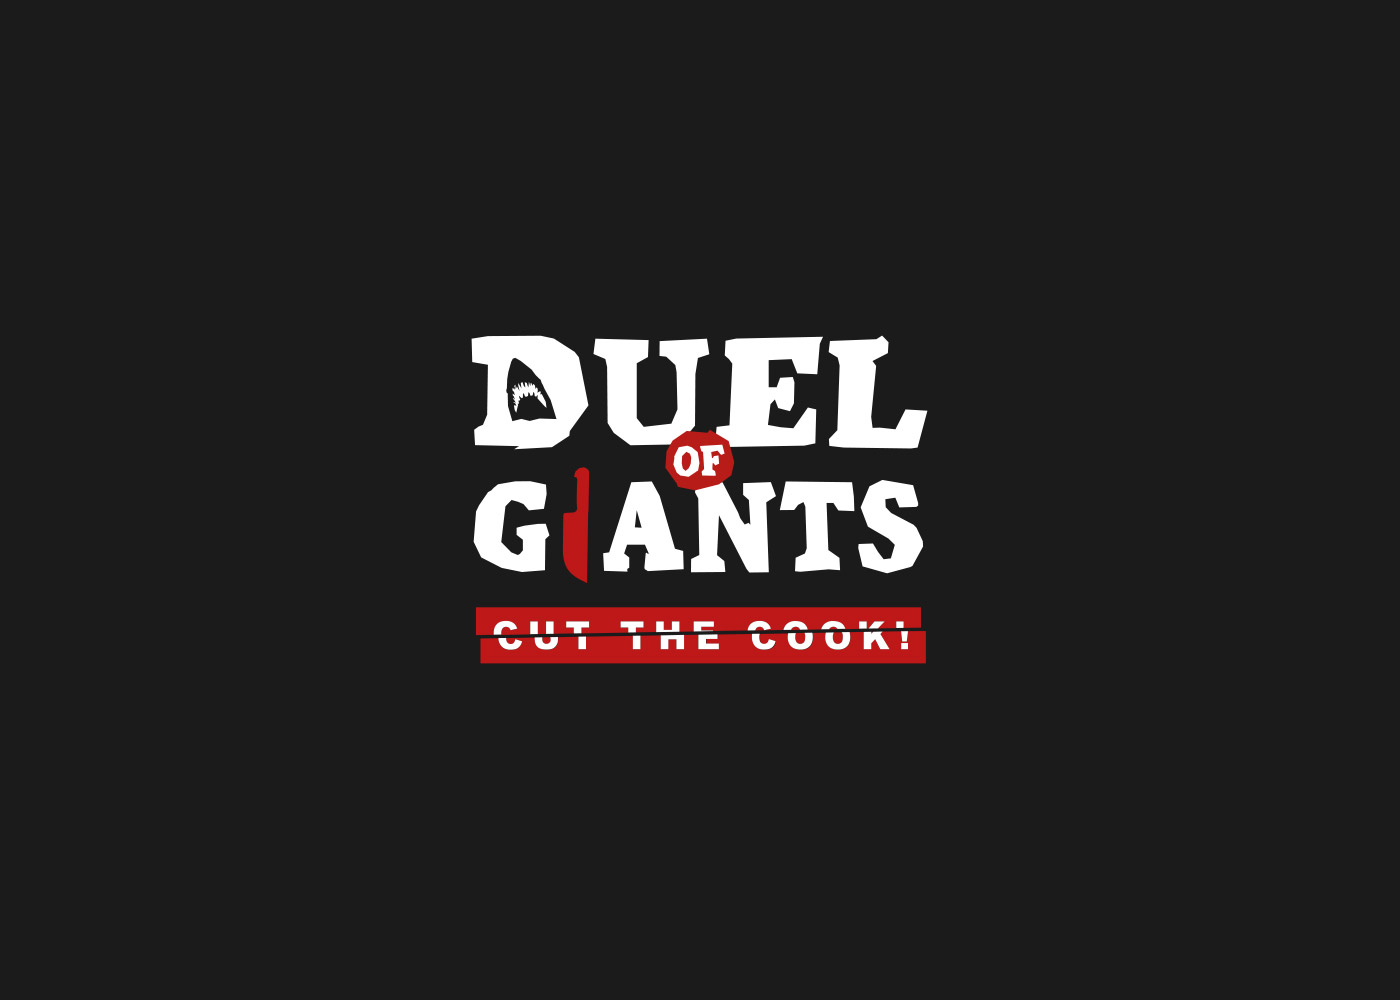 Duel of Giants